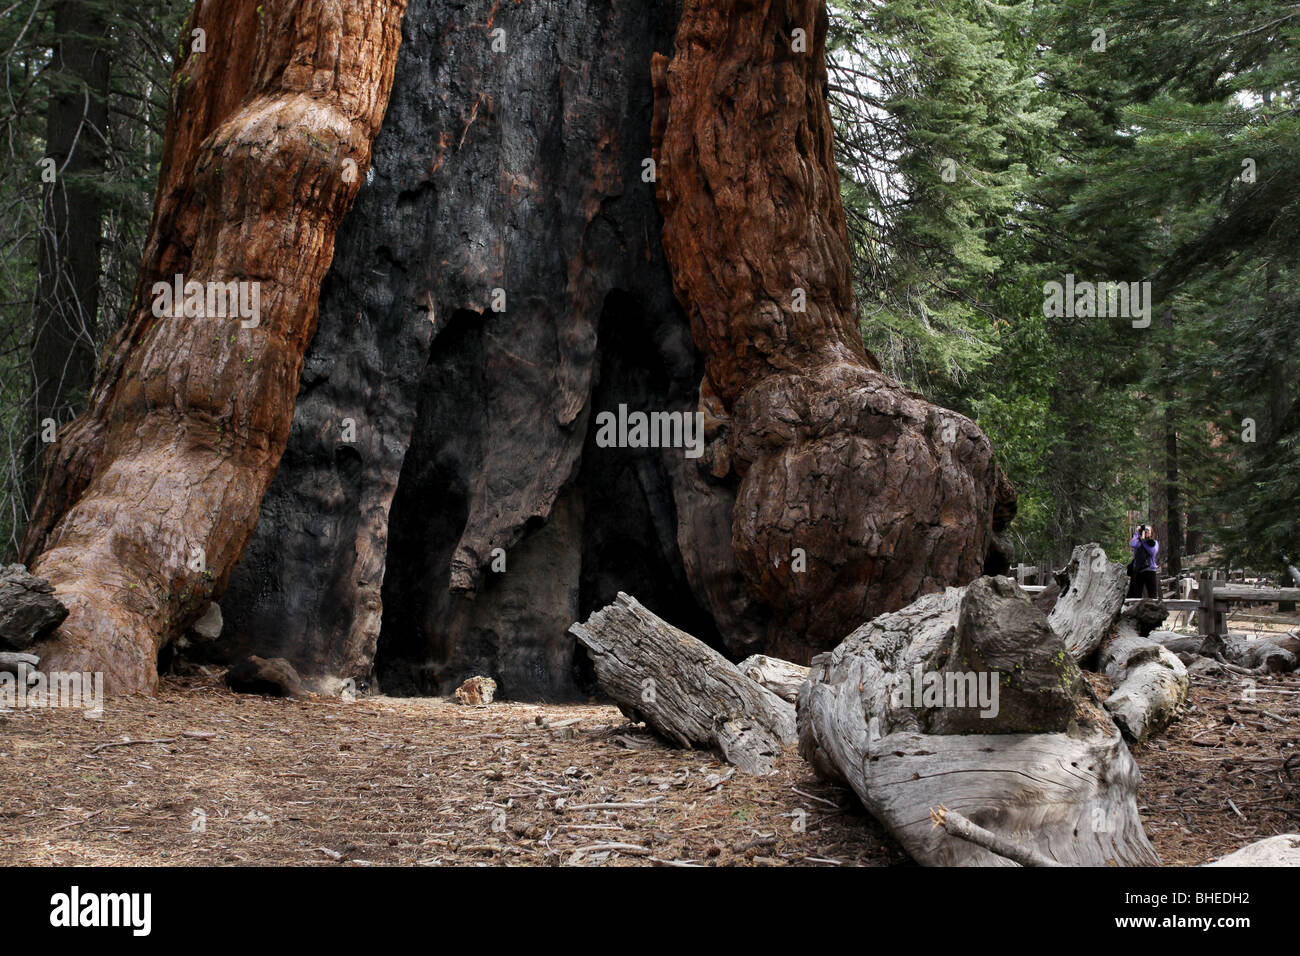 Sequoia tree fire burn scare hiker Mariposa Grove Yosemite National Park - Stock Image